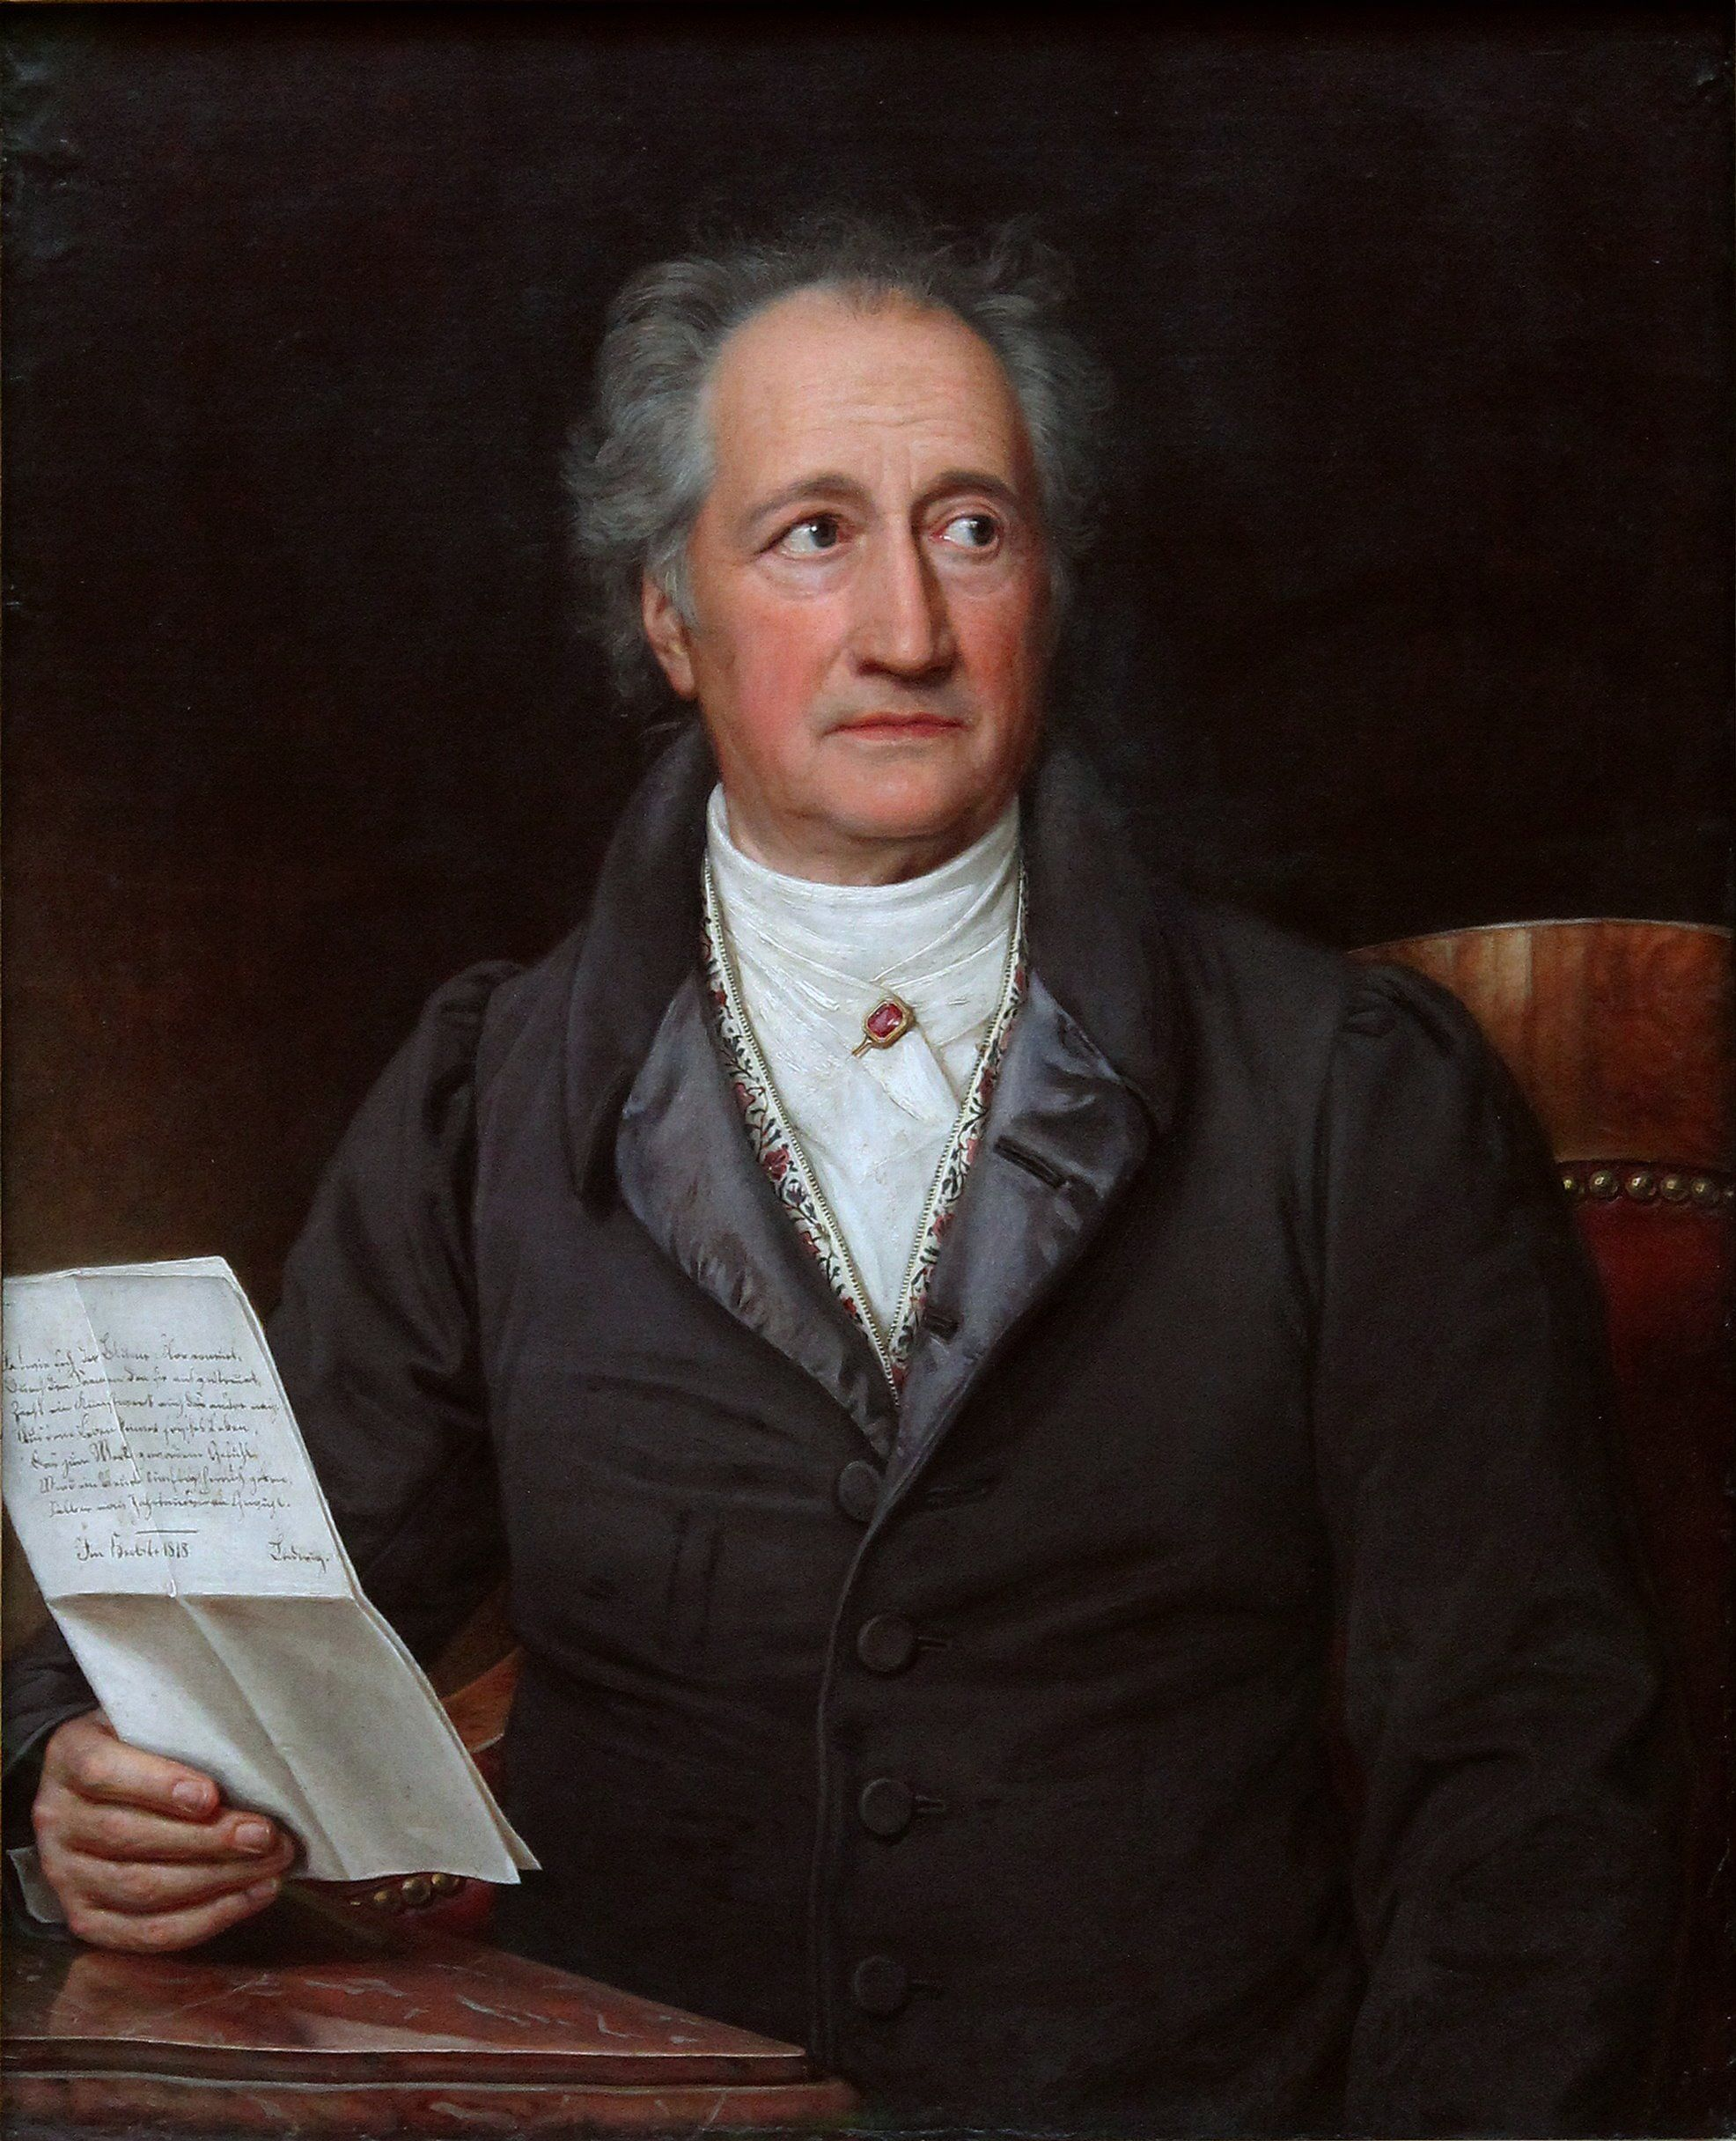 Johann Wolfgang von Goethe, born in 1749, was the greatest poet, writer and